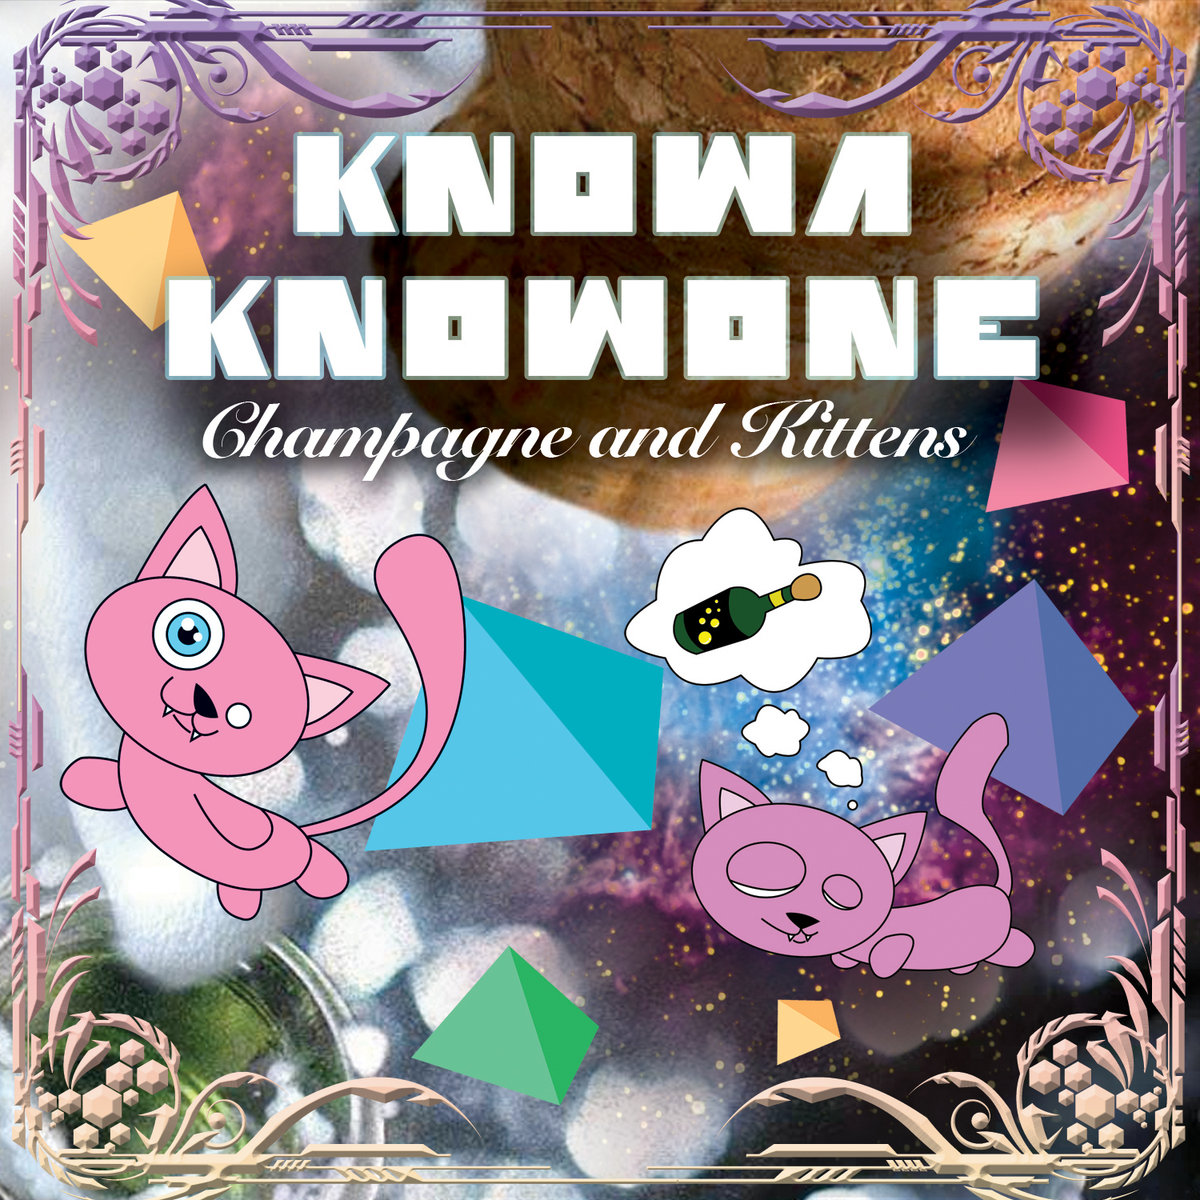 Knowa Knowone feat. ChrisB - Double Rainbow @ 'Champagne and Kittens' album (bass, electronic)